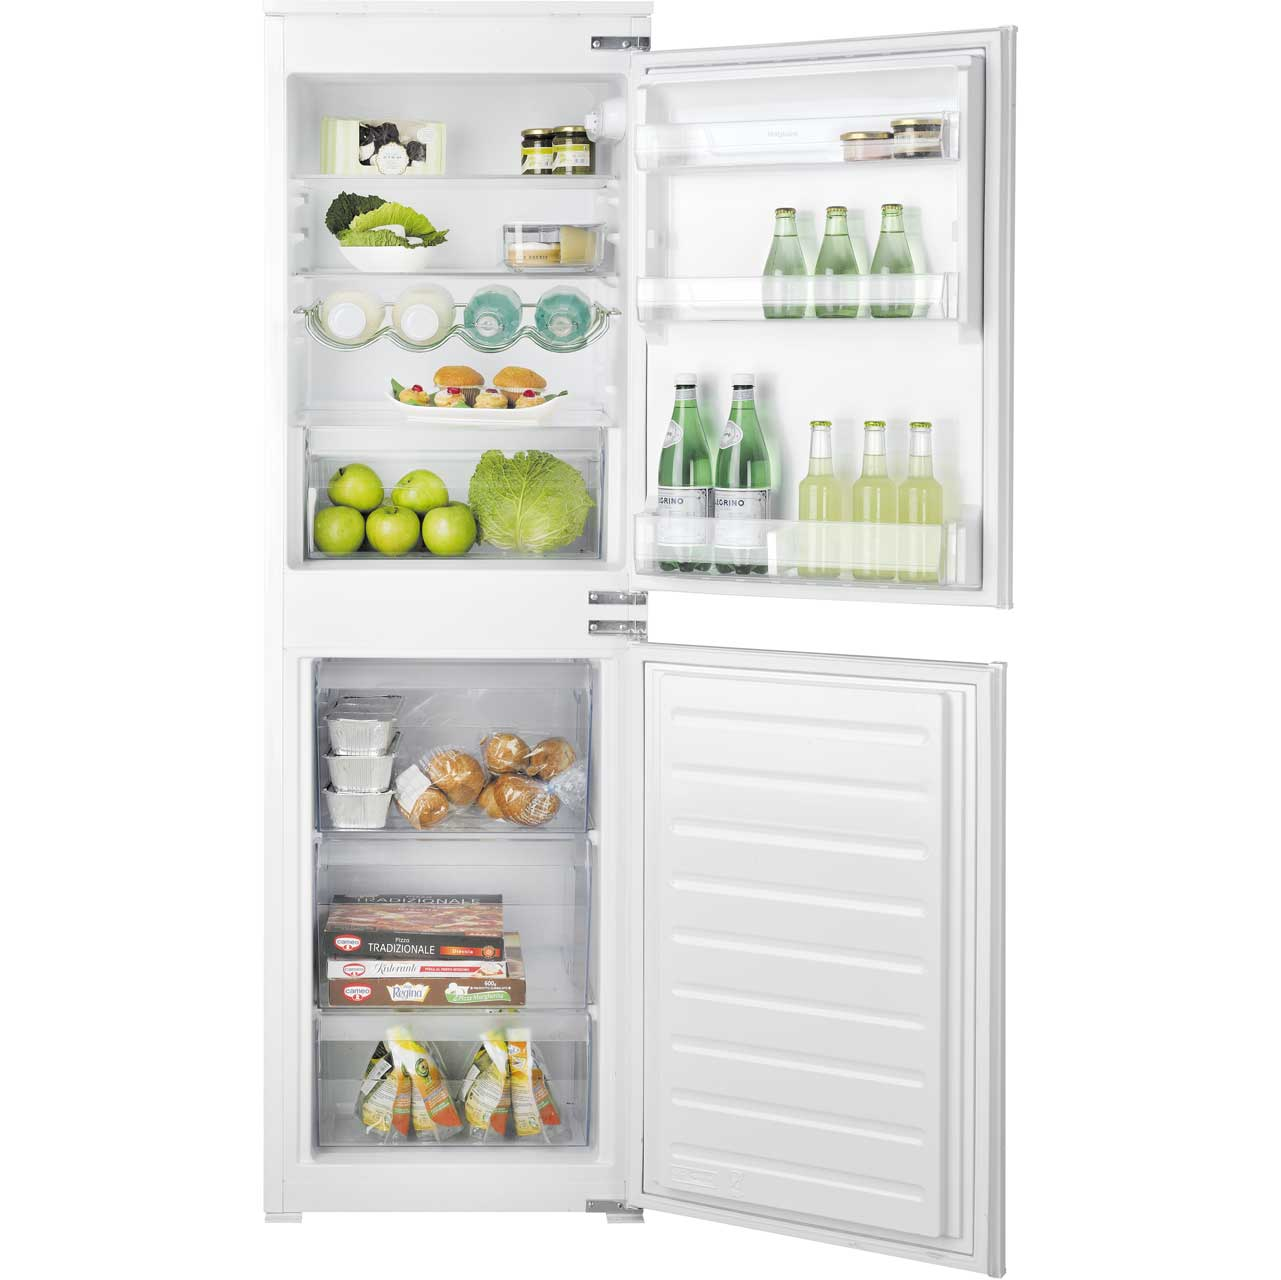 Hotpoint HMCB50501AA Integrated Fridge Freezer in White